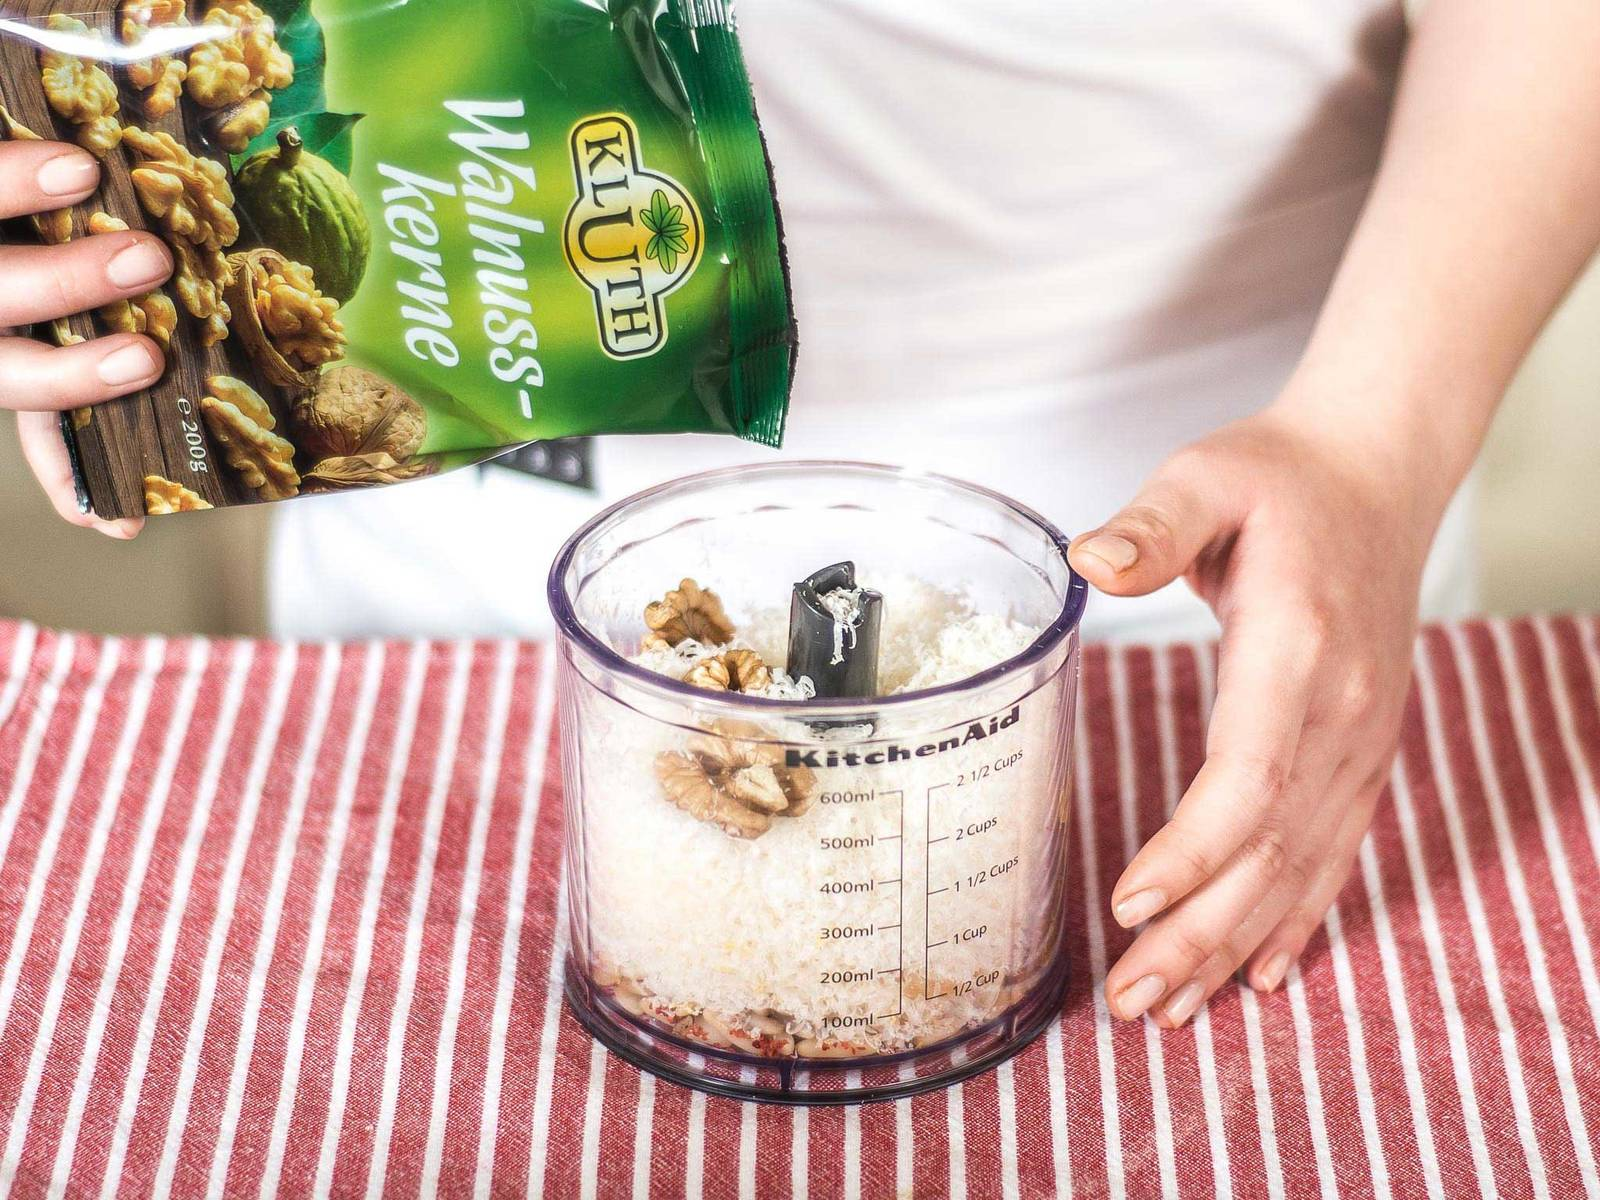 For the nut pesto, use a food processor to blend the walnuts, pine nuts, Parmesan, garlic, mustard, chili powder, and salt and pepper into a coarse puree.